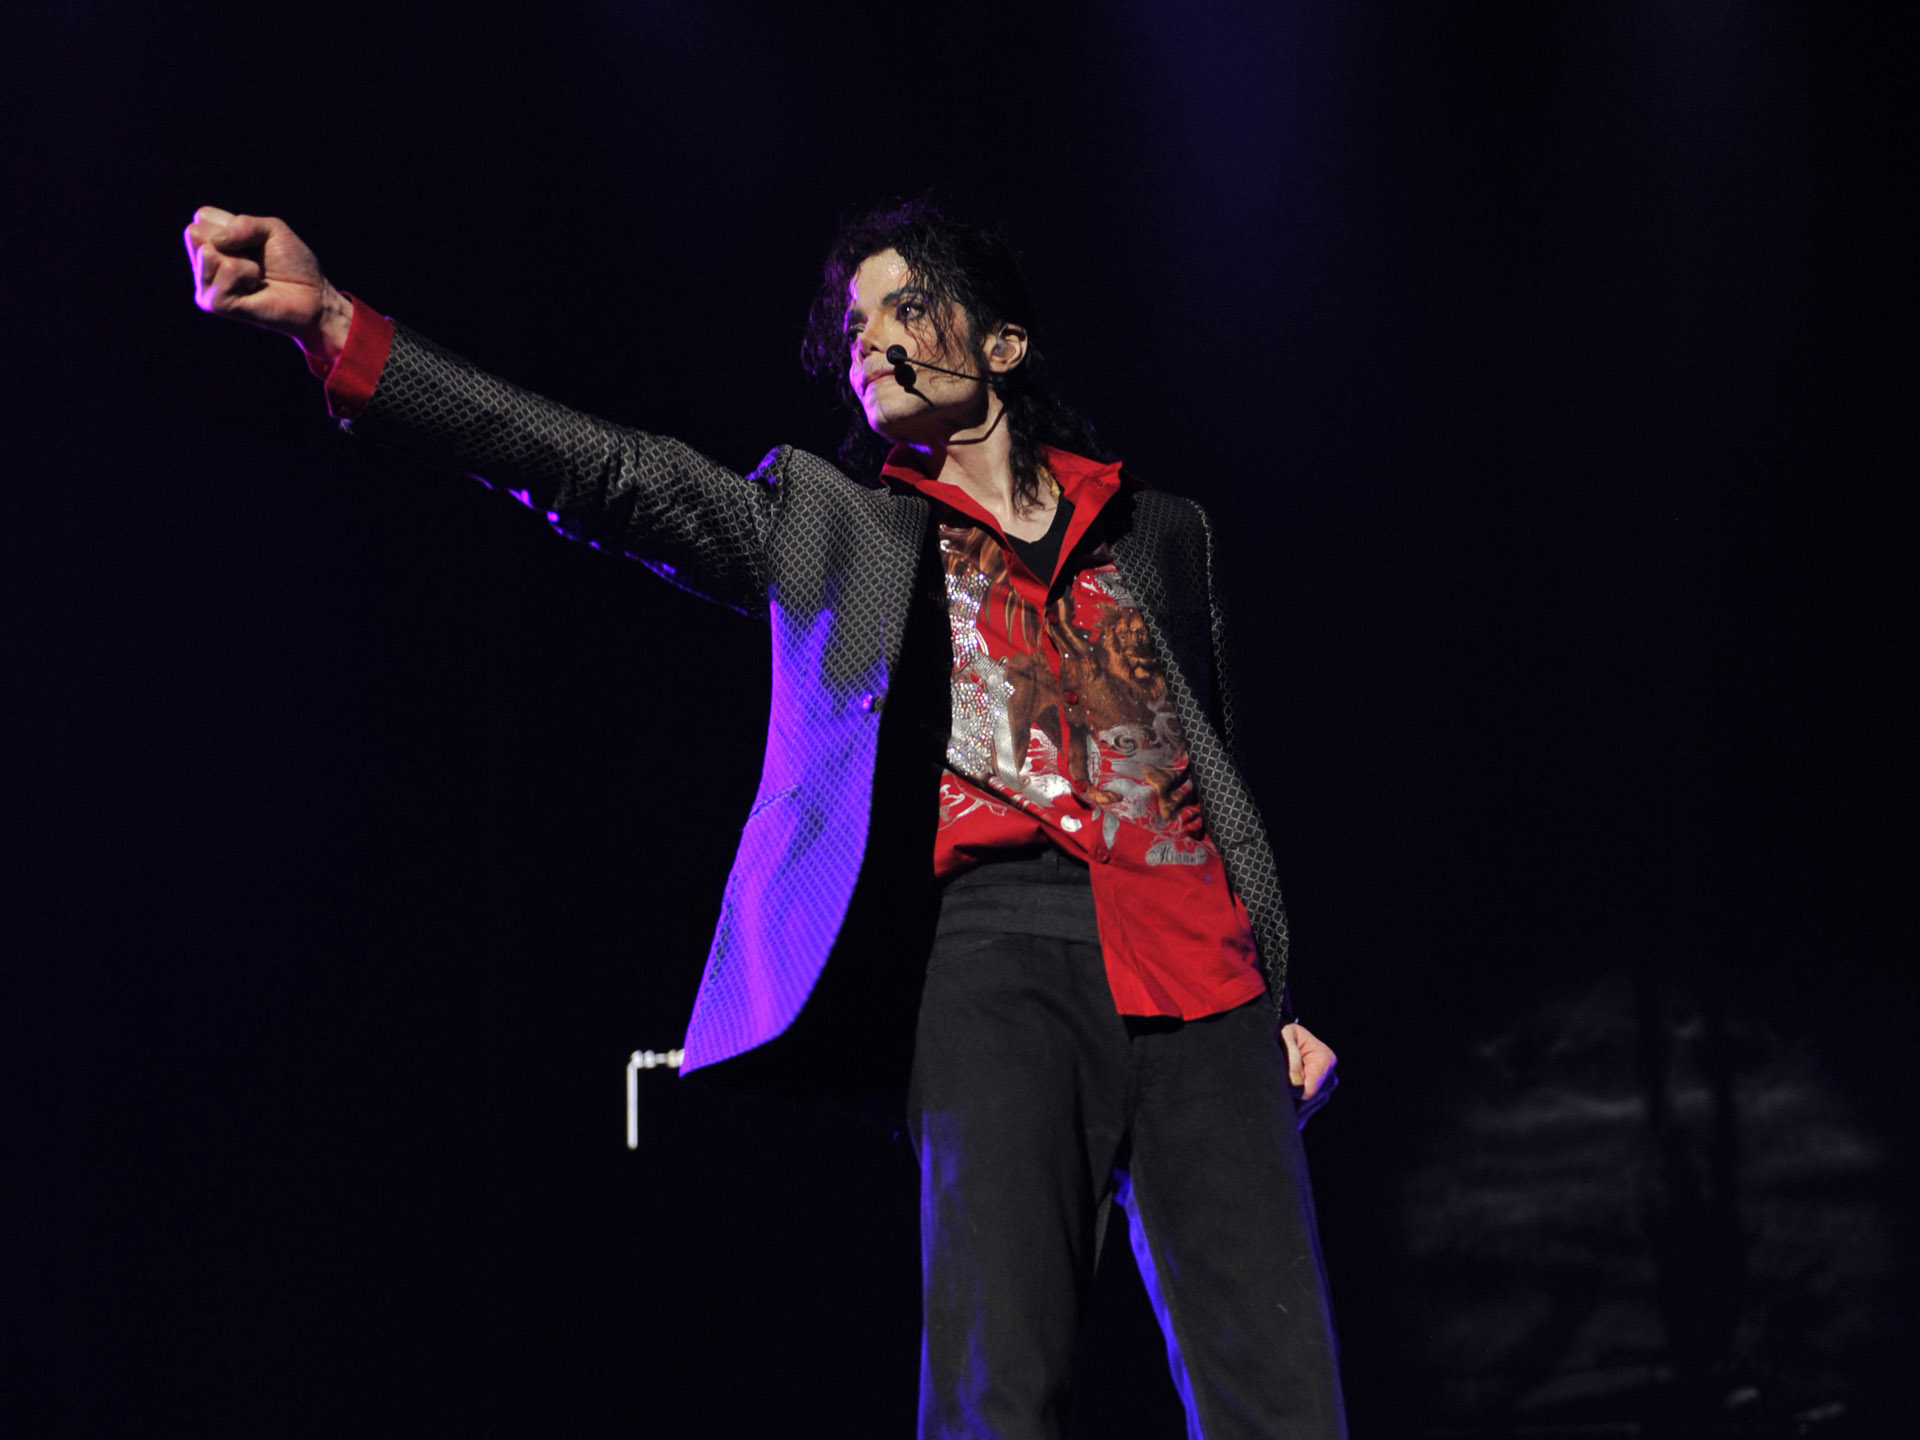 Michael Jackson Wallpapers HD A22